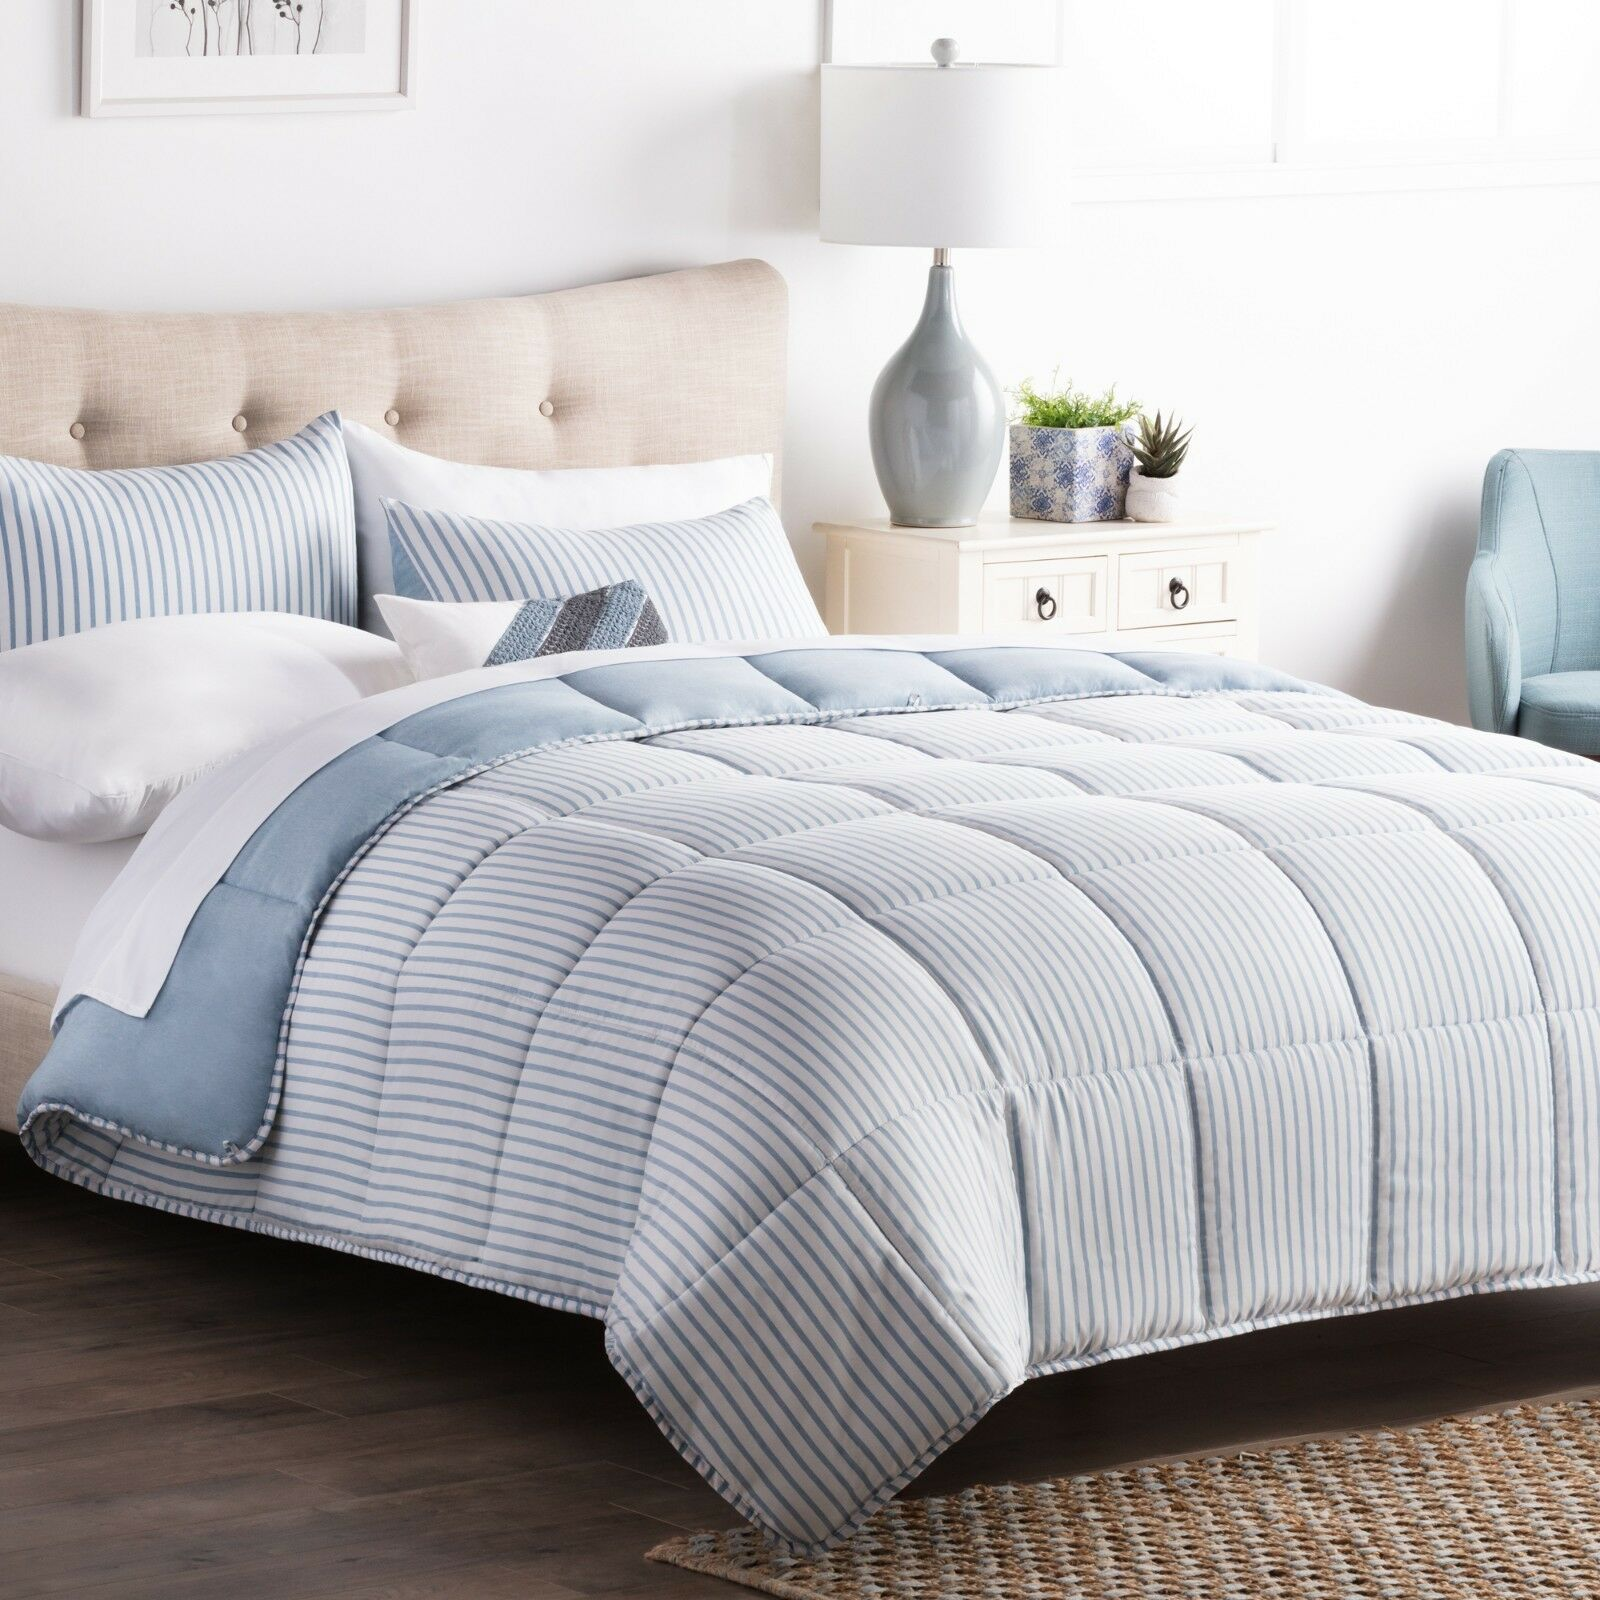 BROOKSIDE Reversible Striped Chambray Comforter Bed Set with